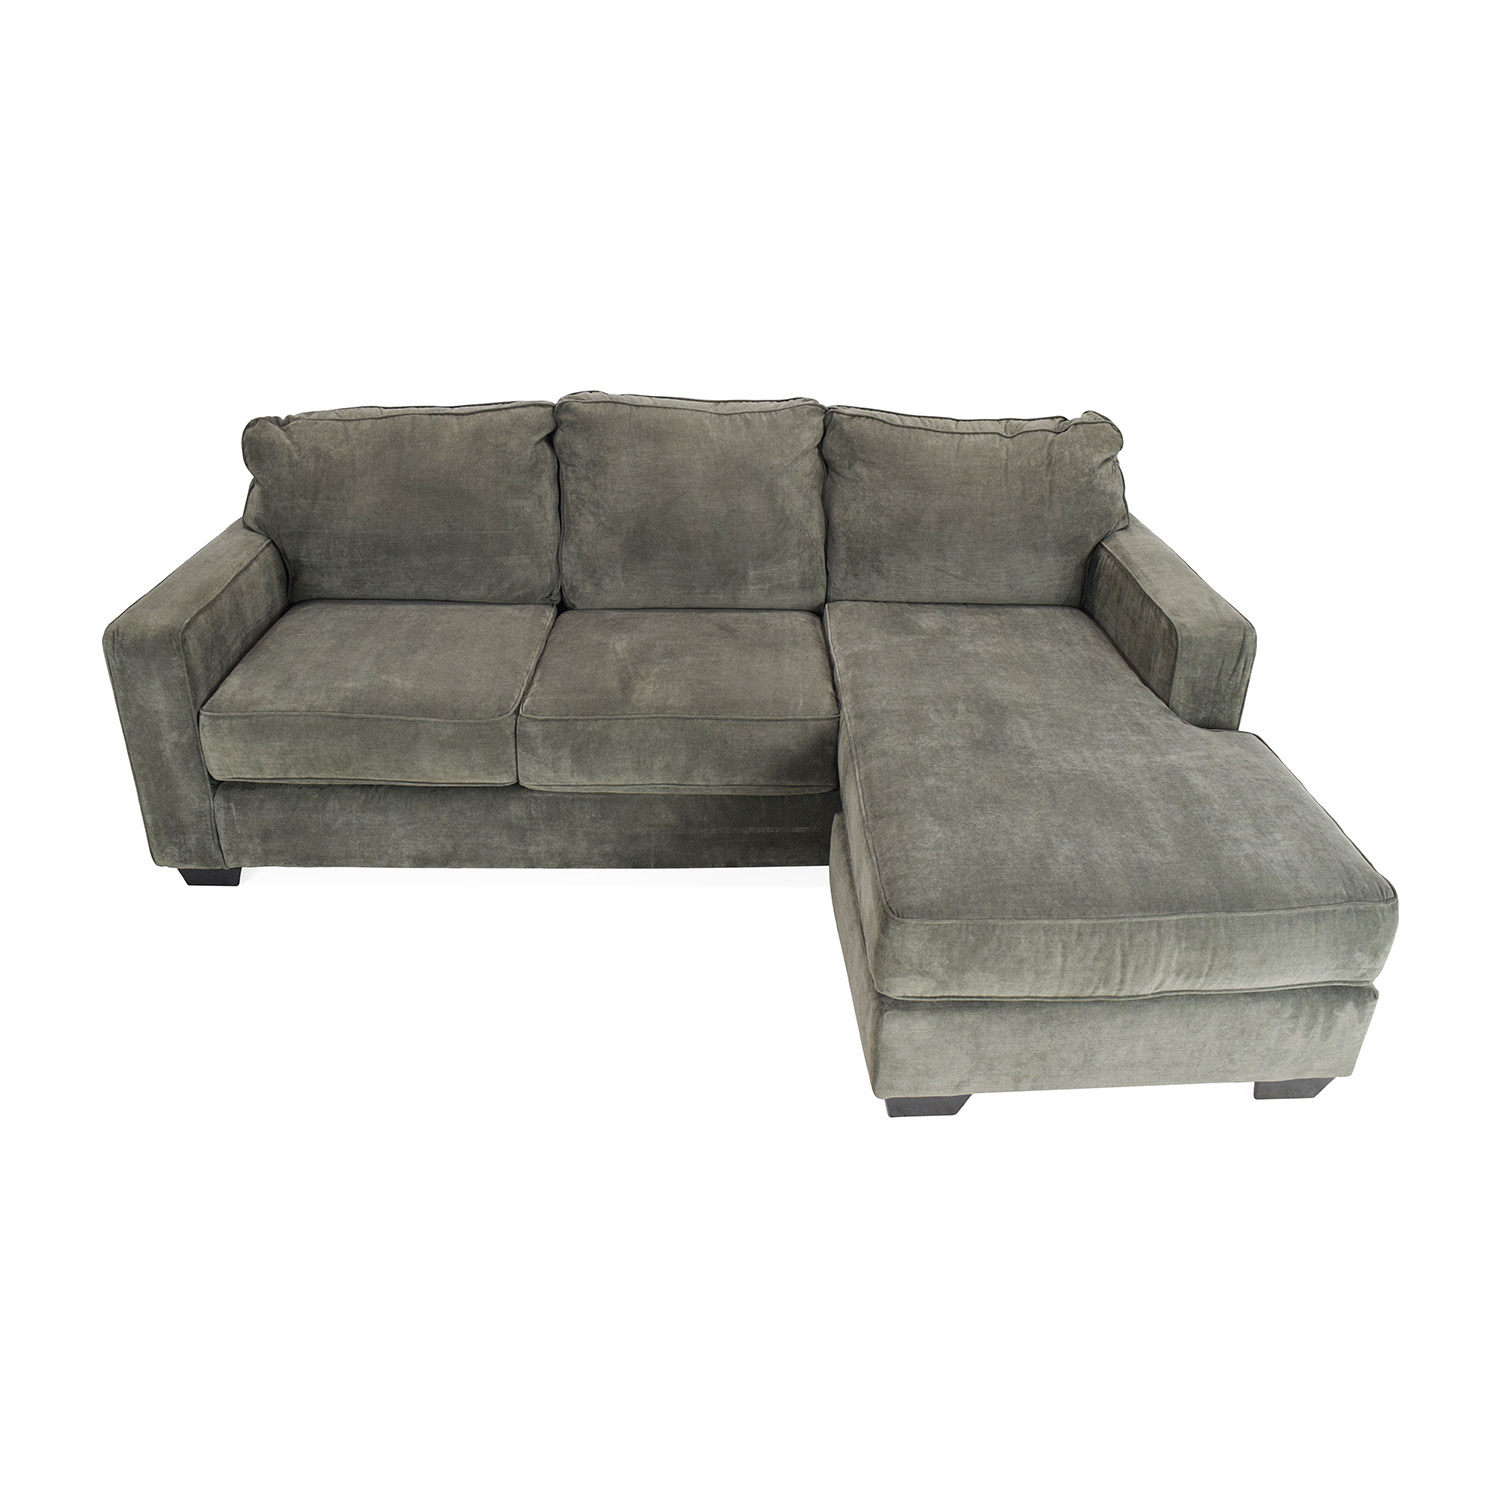 54 off jennifer convertibles jennifer convertibles for Sectional sofa jennifer convertible